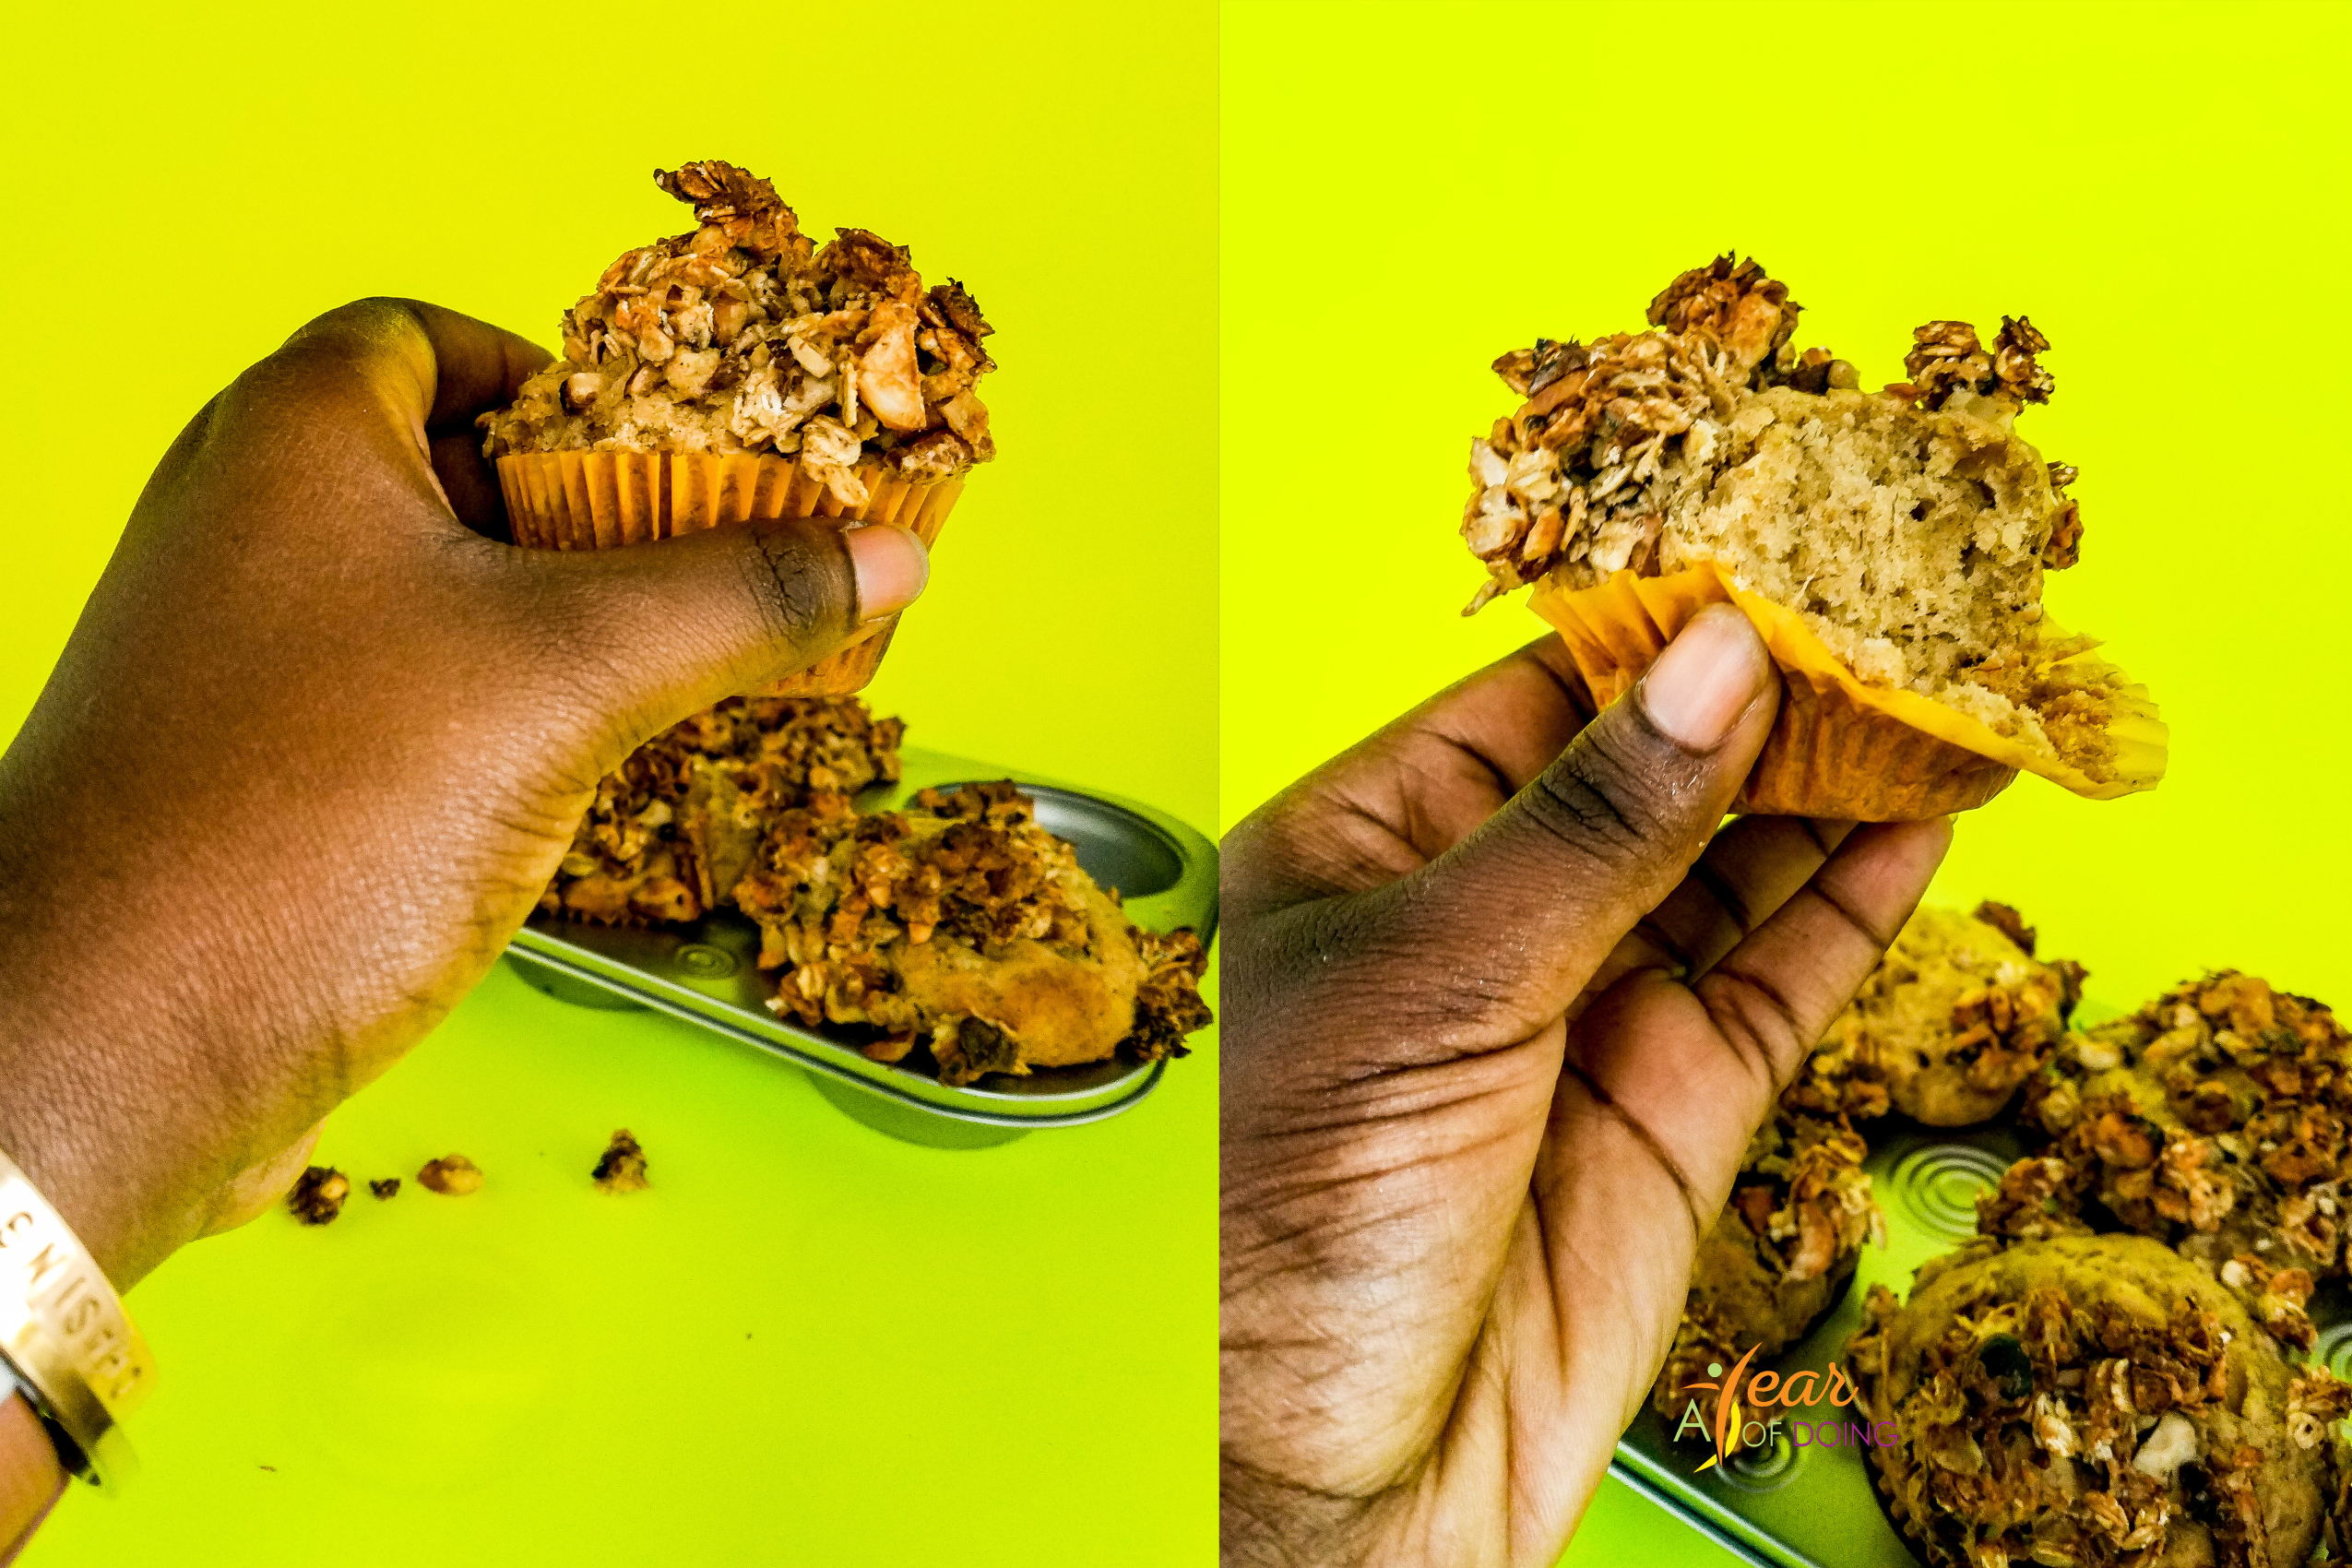 Lifting the Brown Butter Banana Bread Muffin